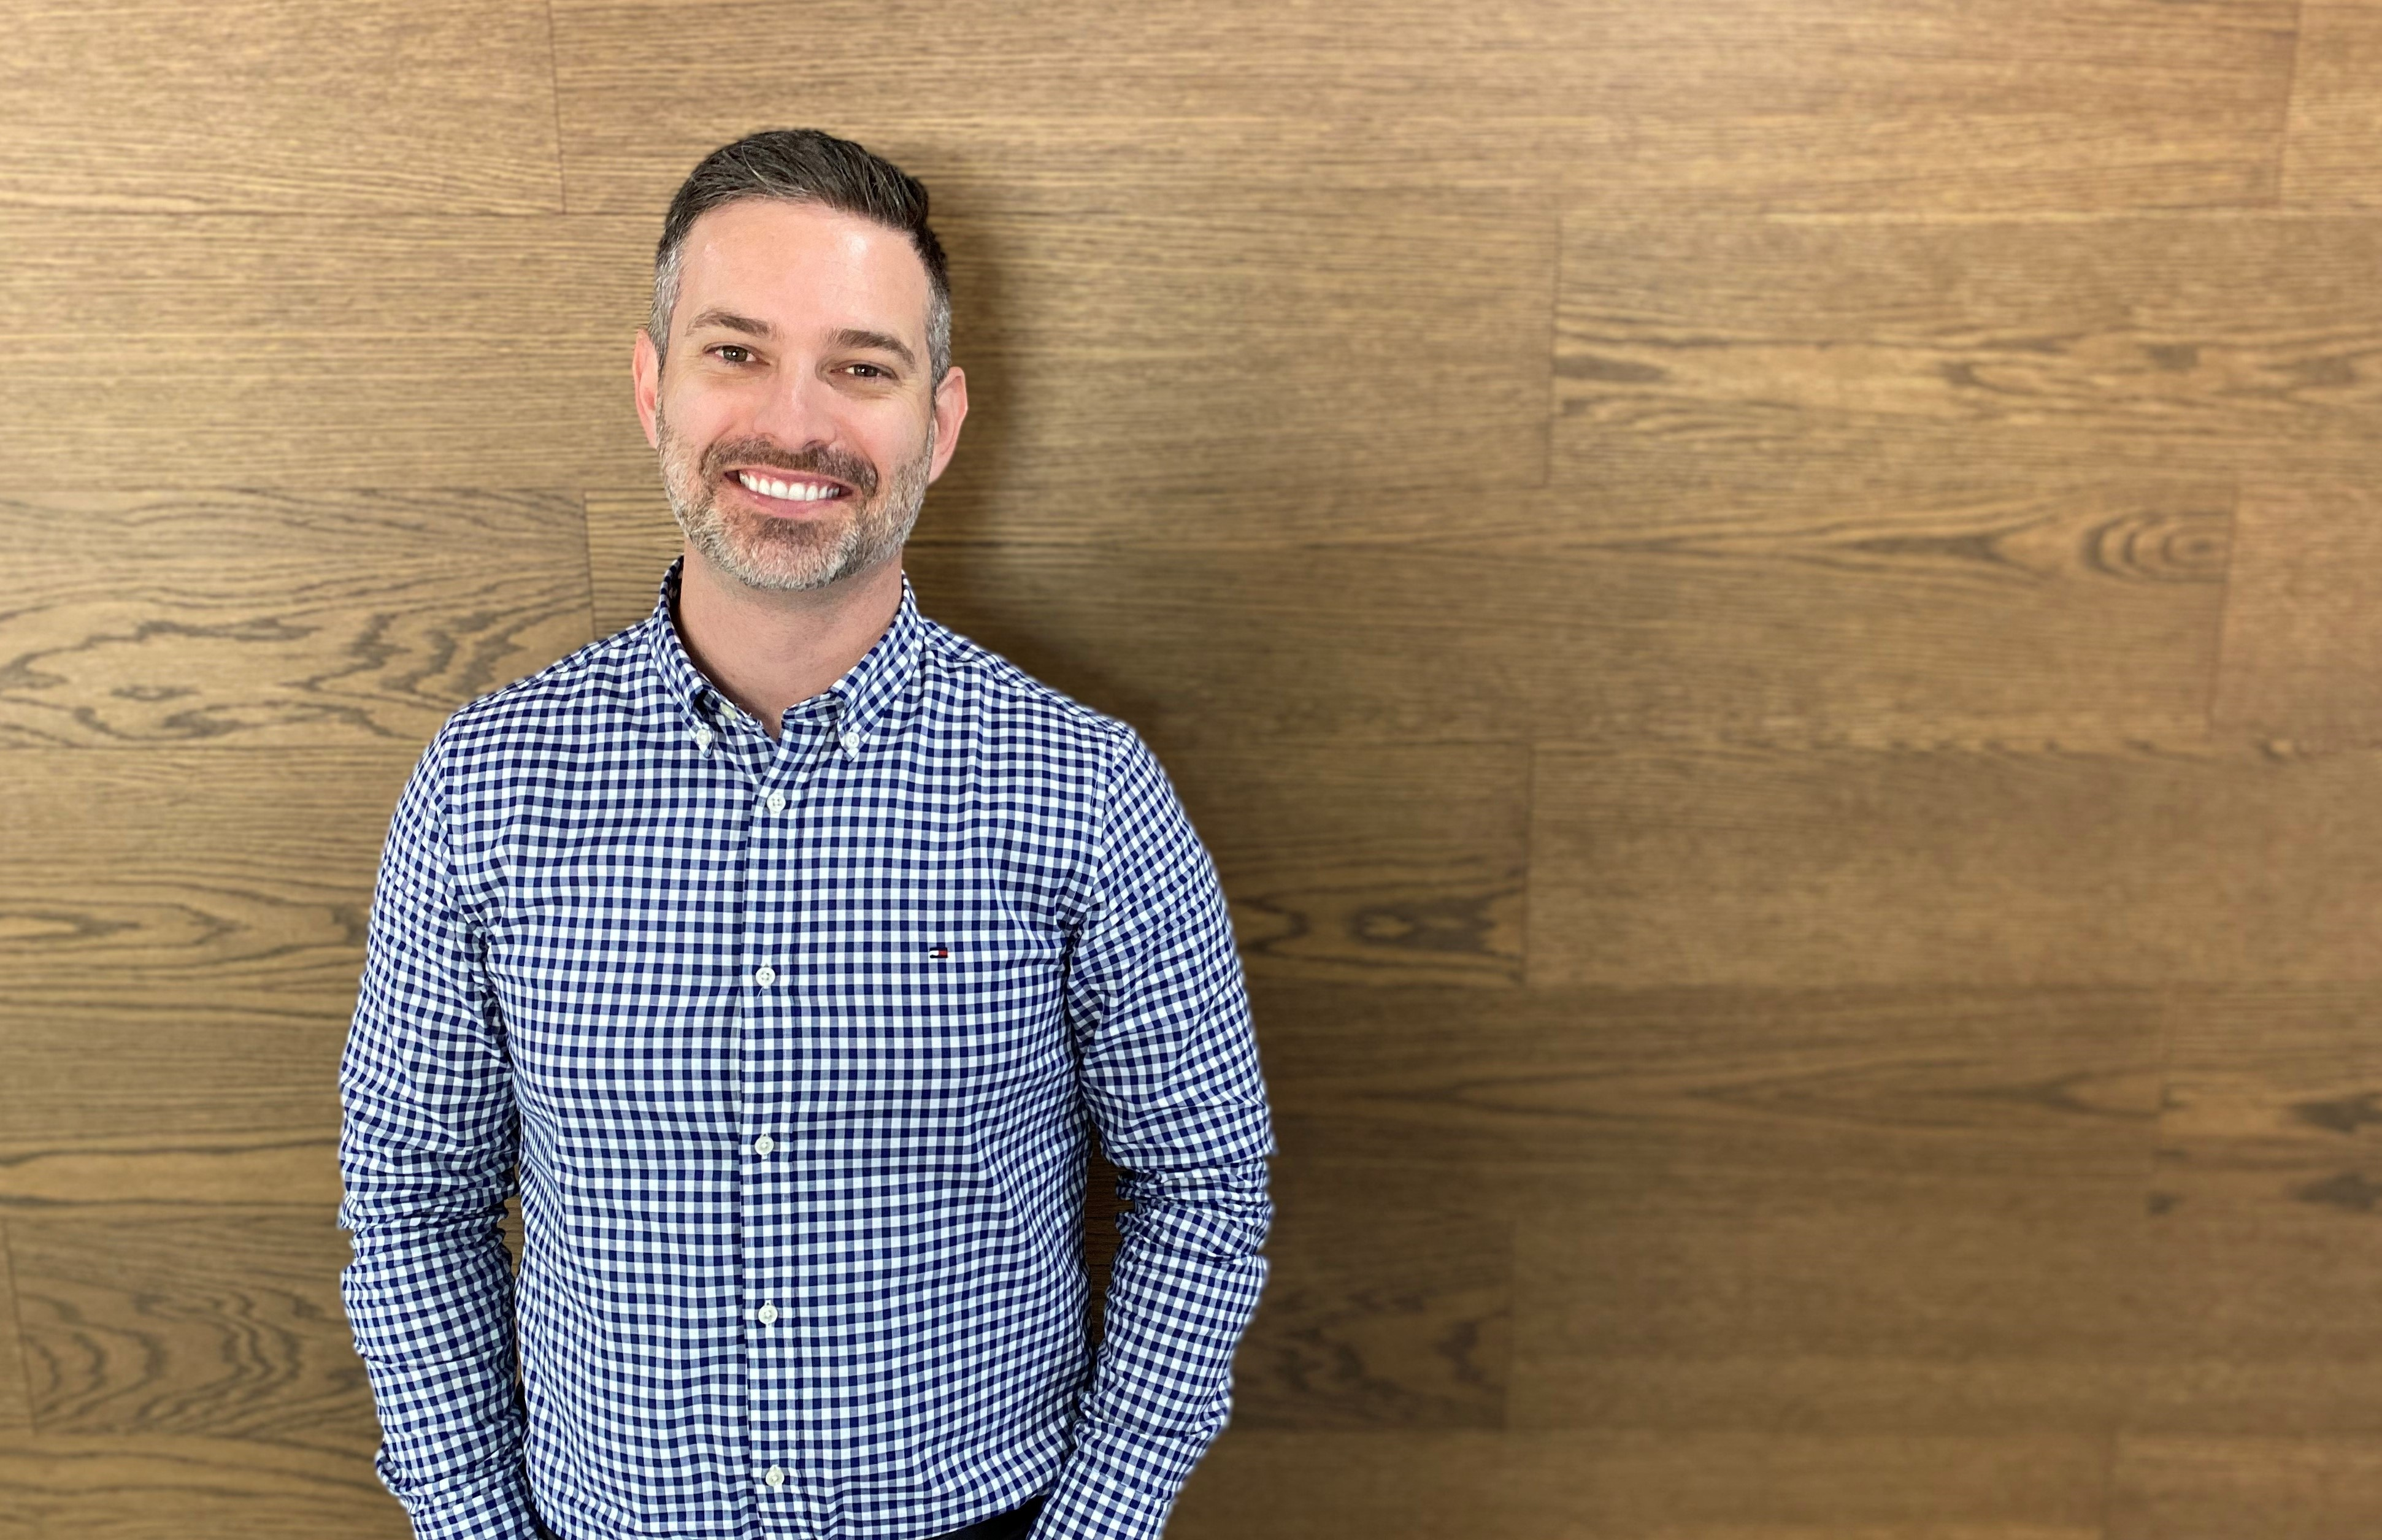 Meet Luke Russell, our new GM - Sydney Region